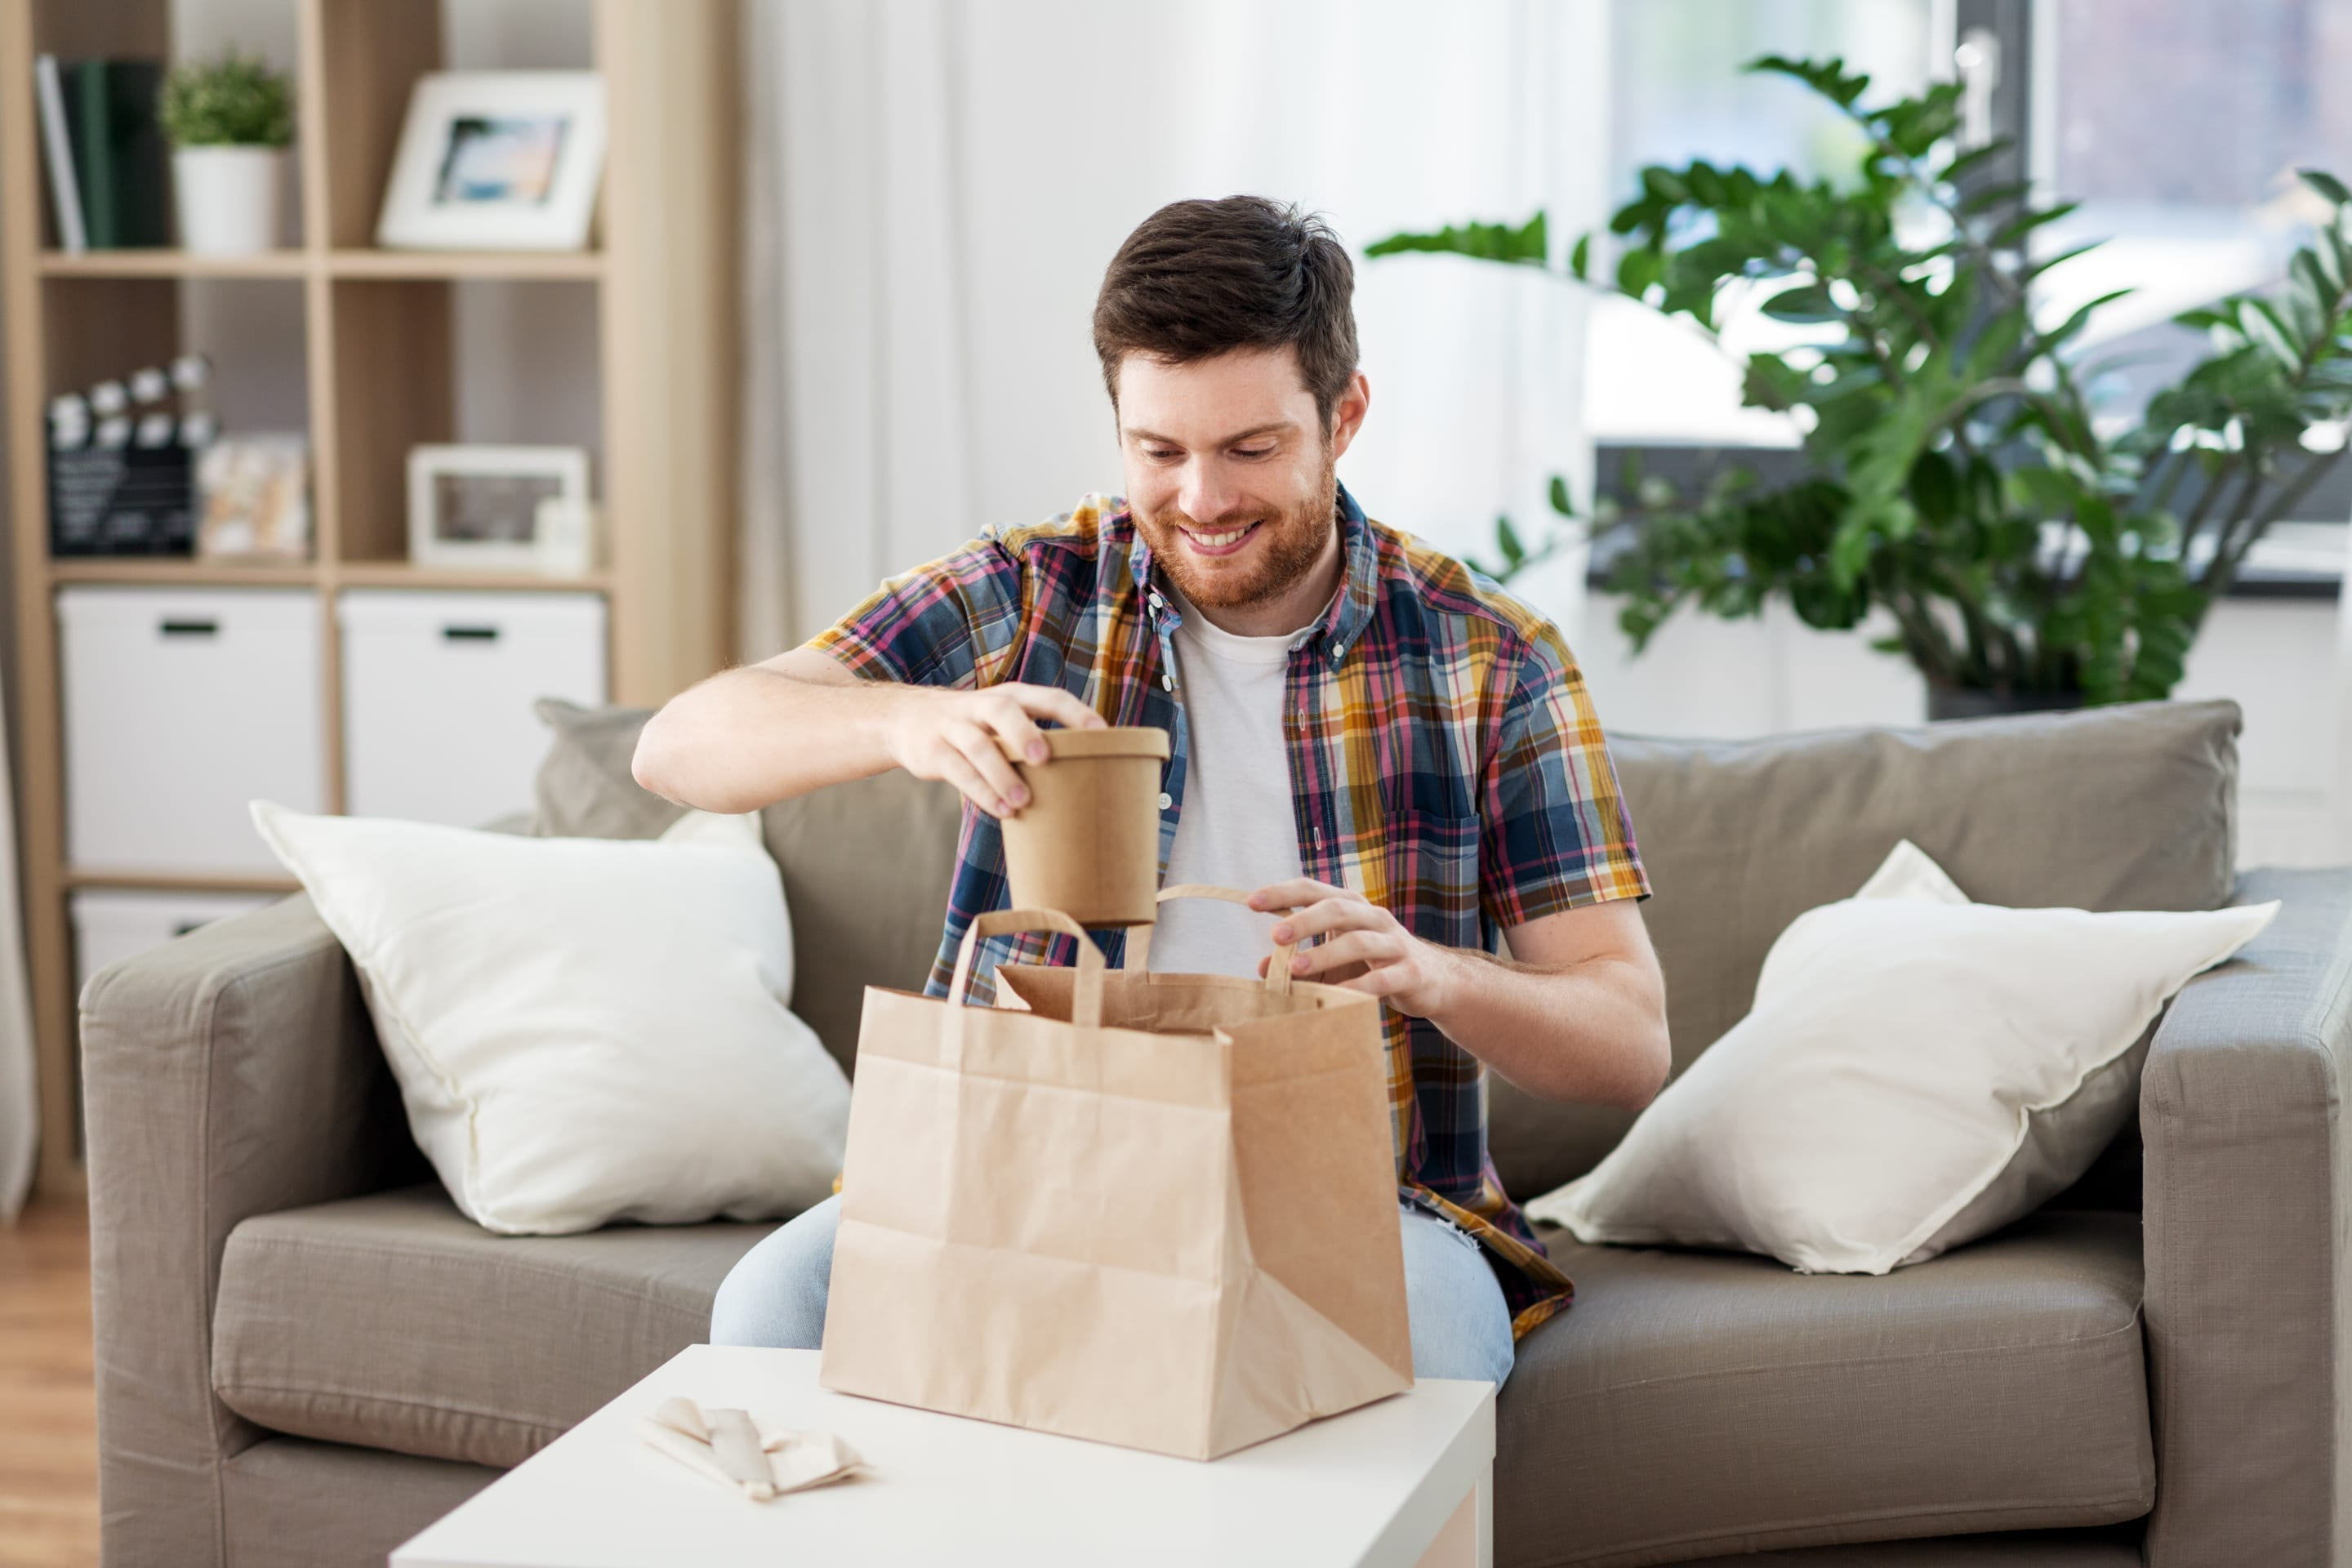 Smiling man eating takeout food.